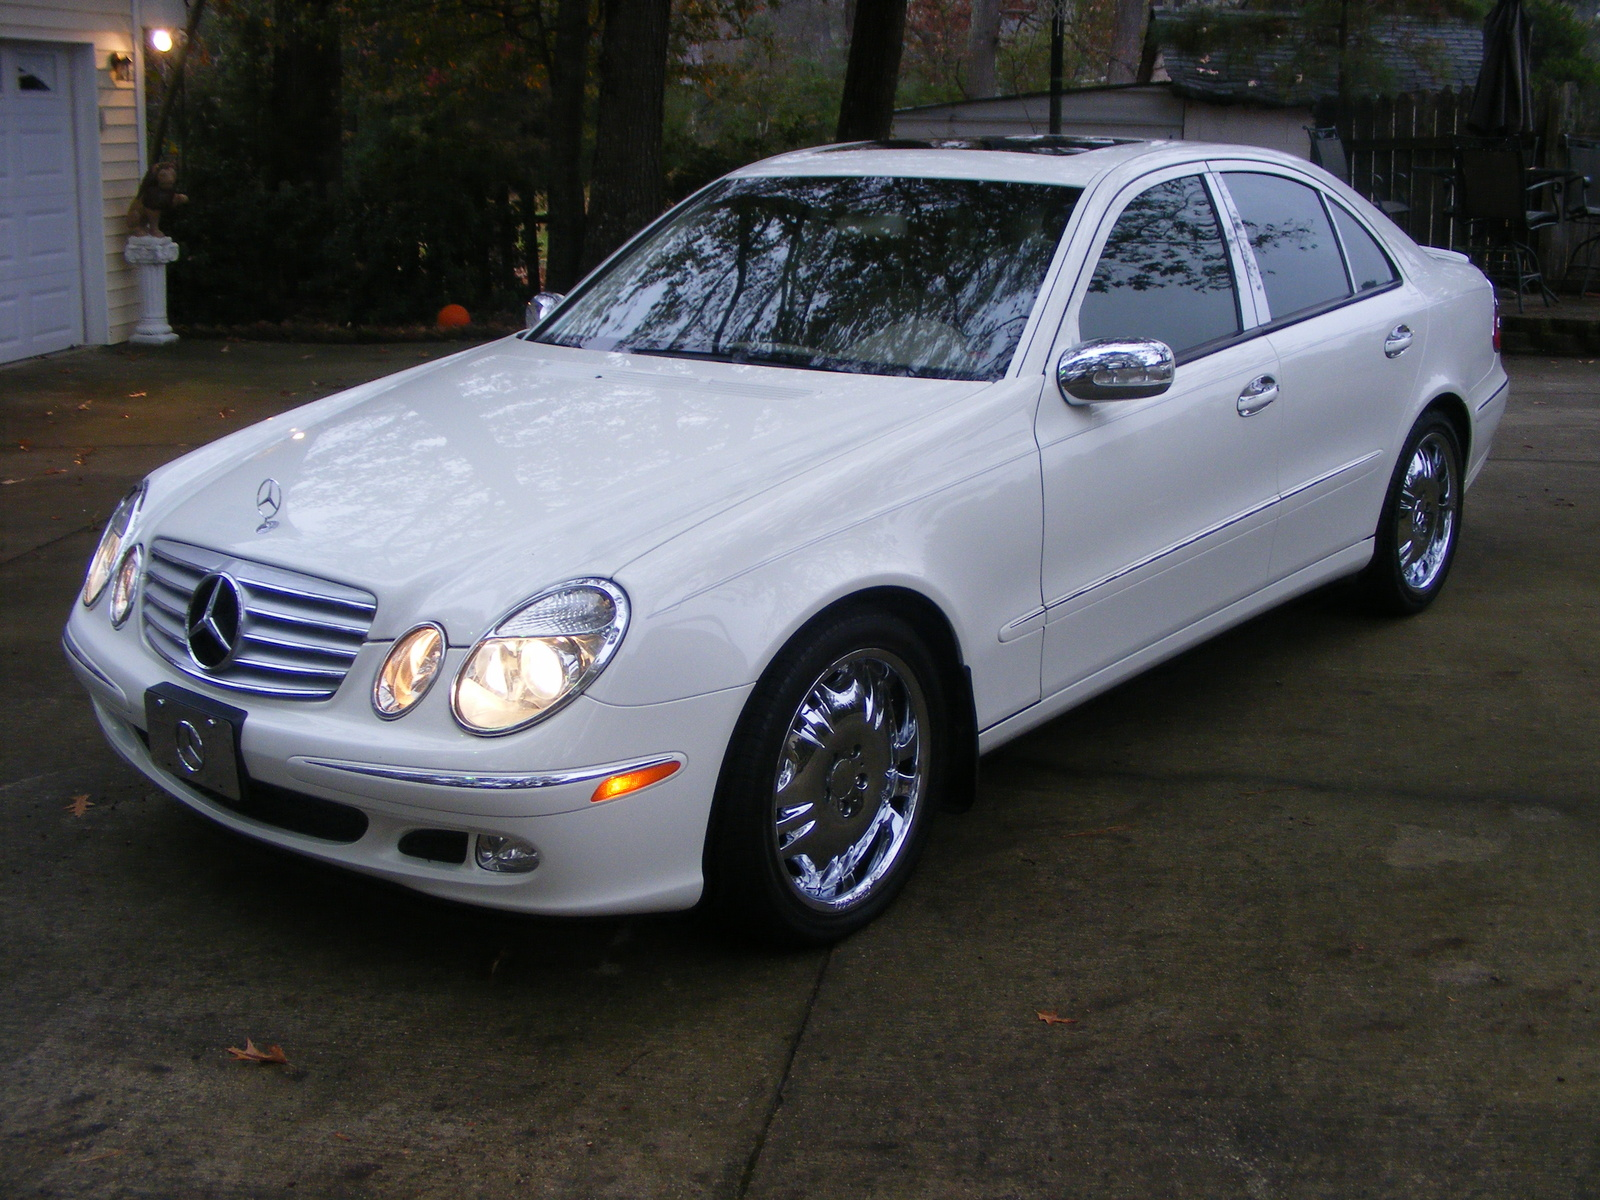 2004 mercedes benz e class pictures cargurus for 2004 mercedes benz e320 review